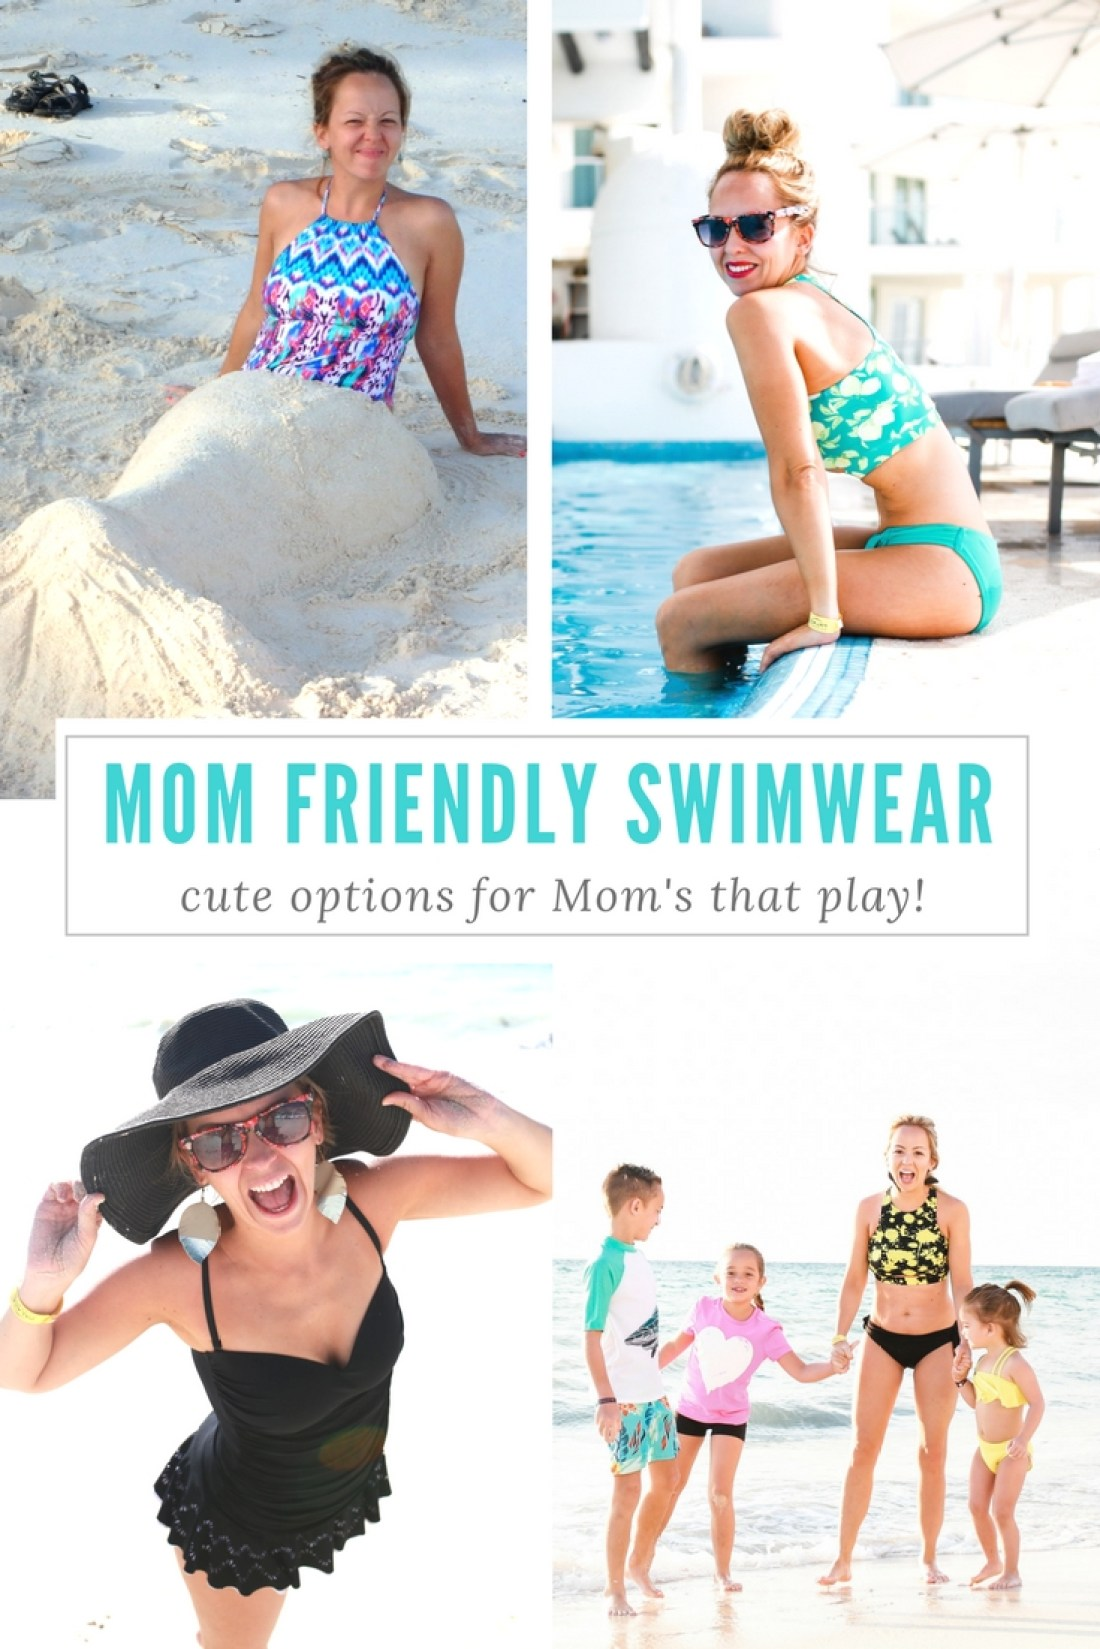 Fun swim options that are supportive and modest but still cute and fun!